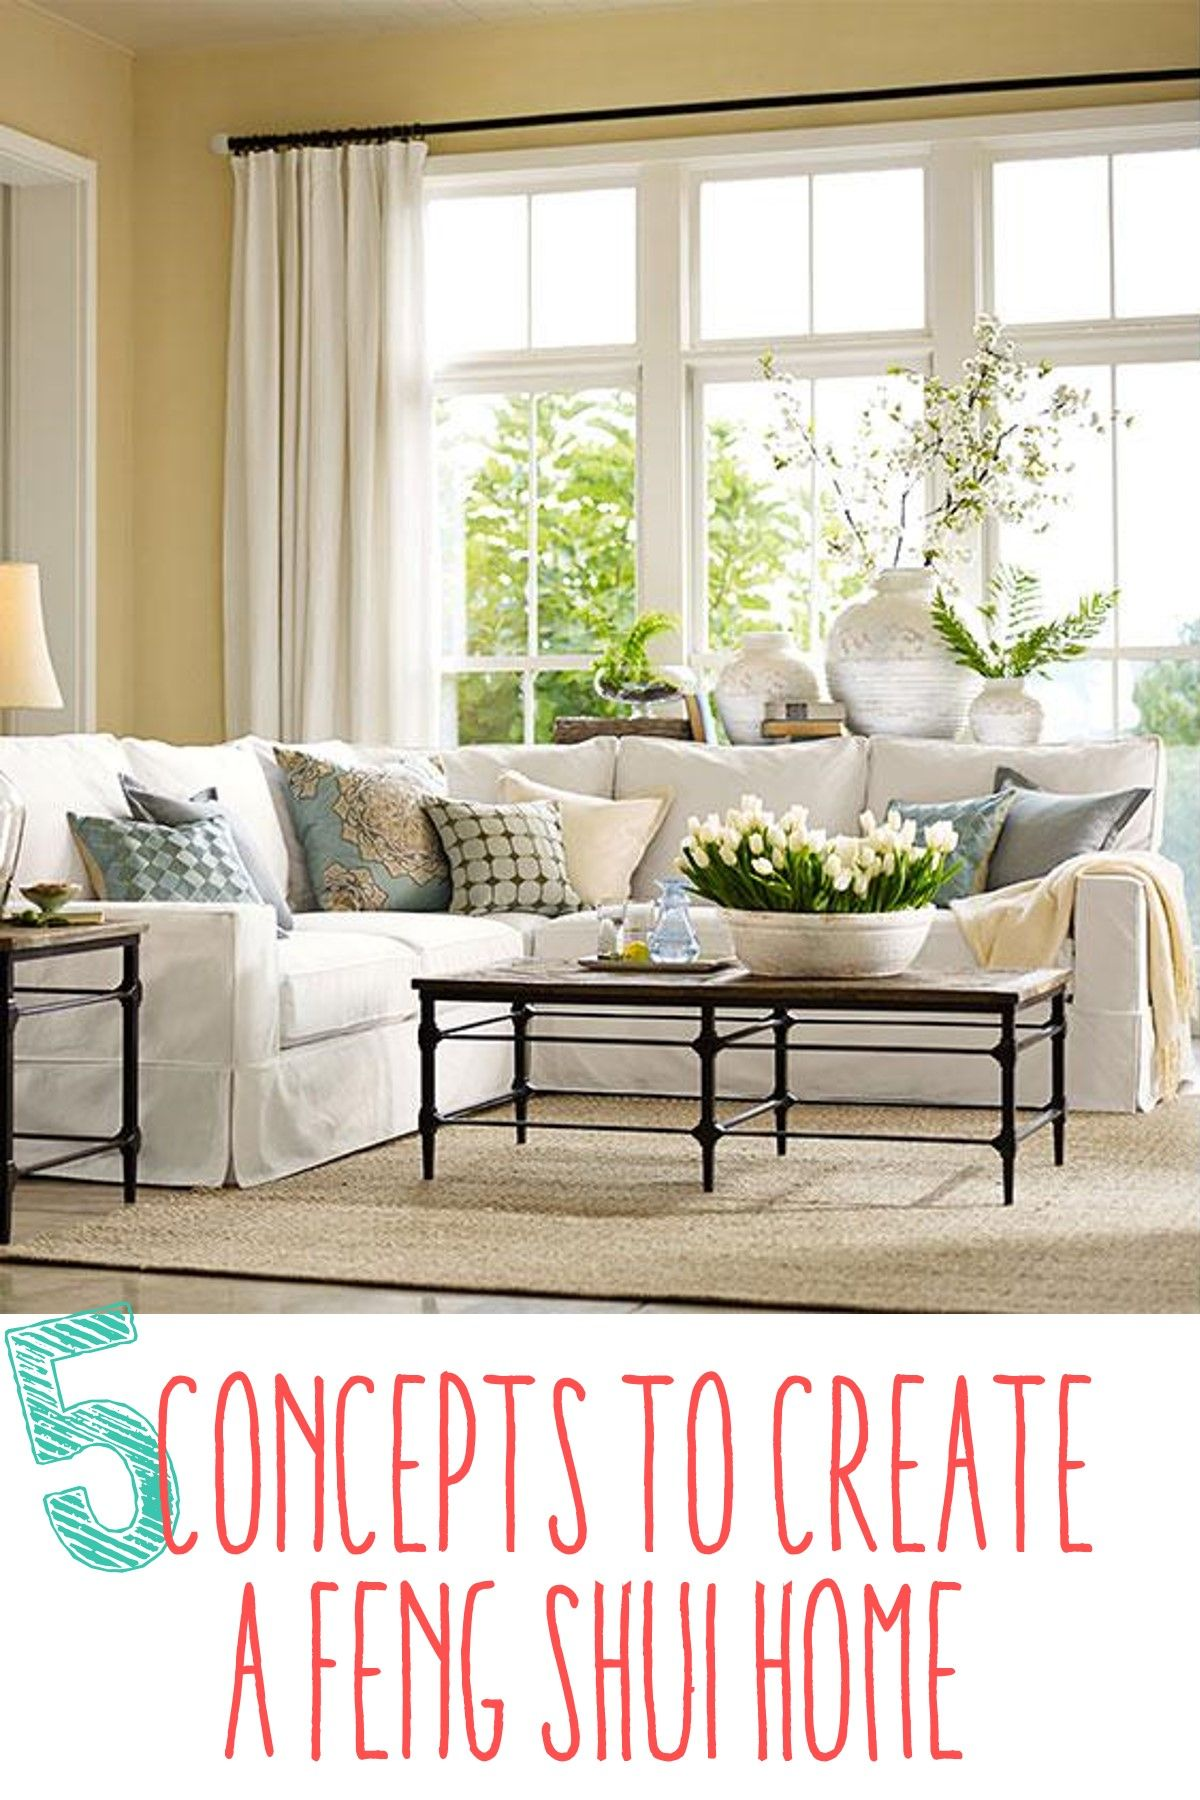 Muebles Feng Shui 5 Concepts To Create A Feng Shui Home Casa Y Decoracion